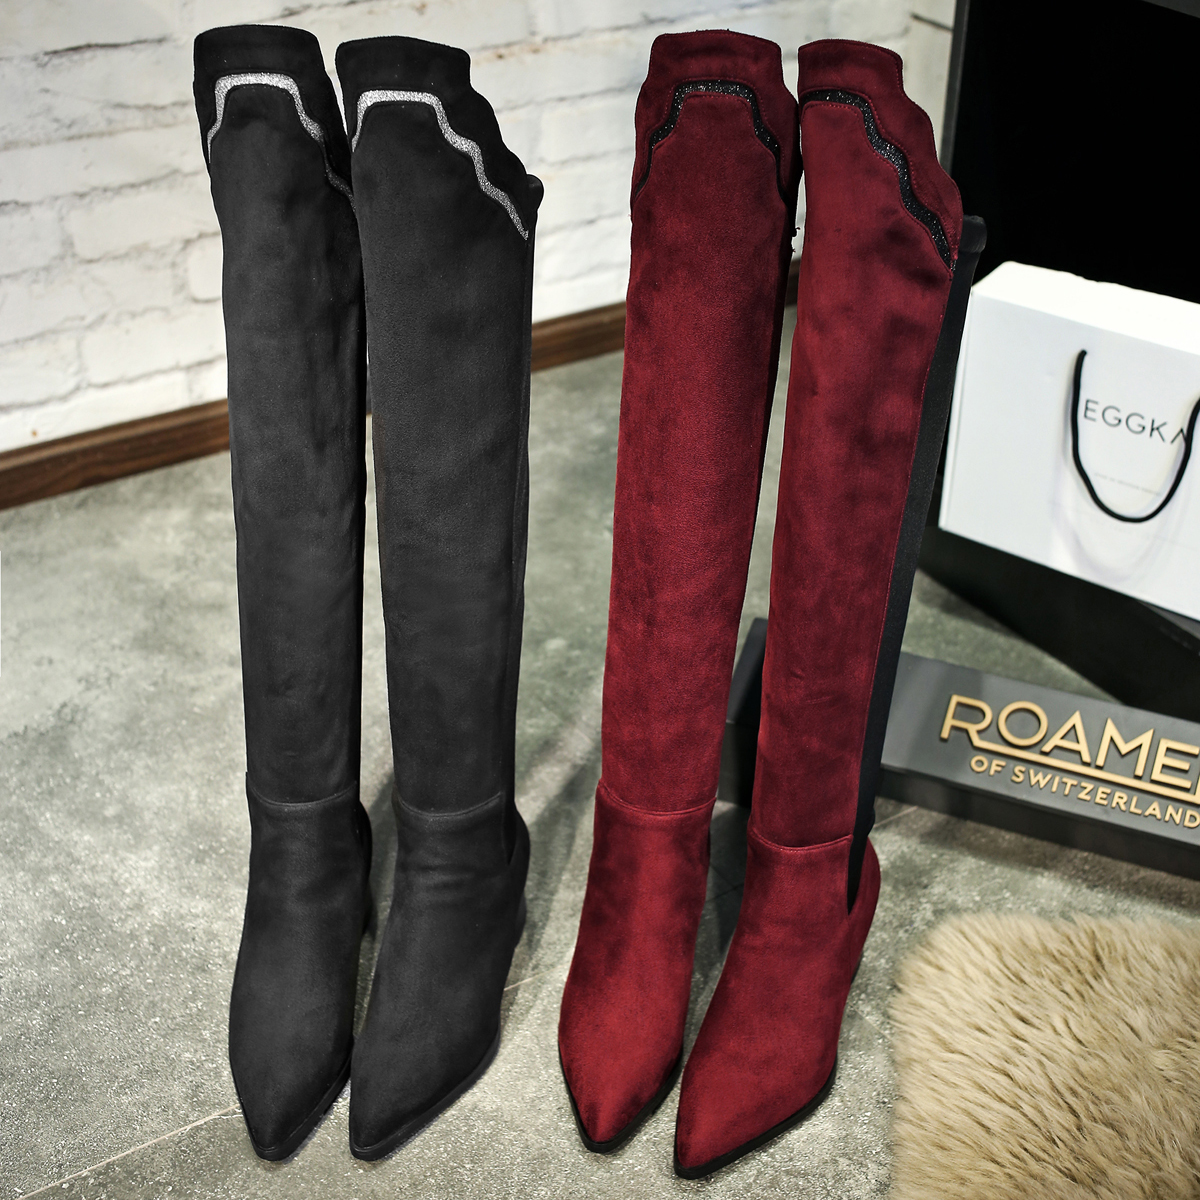 410d6d03620d US  35 - Fashion women s shoes in winter 2019 over the knee boots fashion  shoes women burgundy fashion women s booties chunky heels 6cm small size 32  33 ...